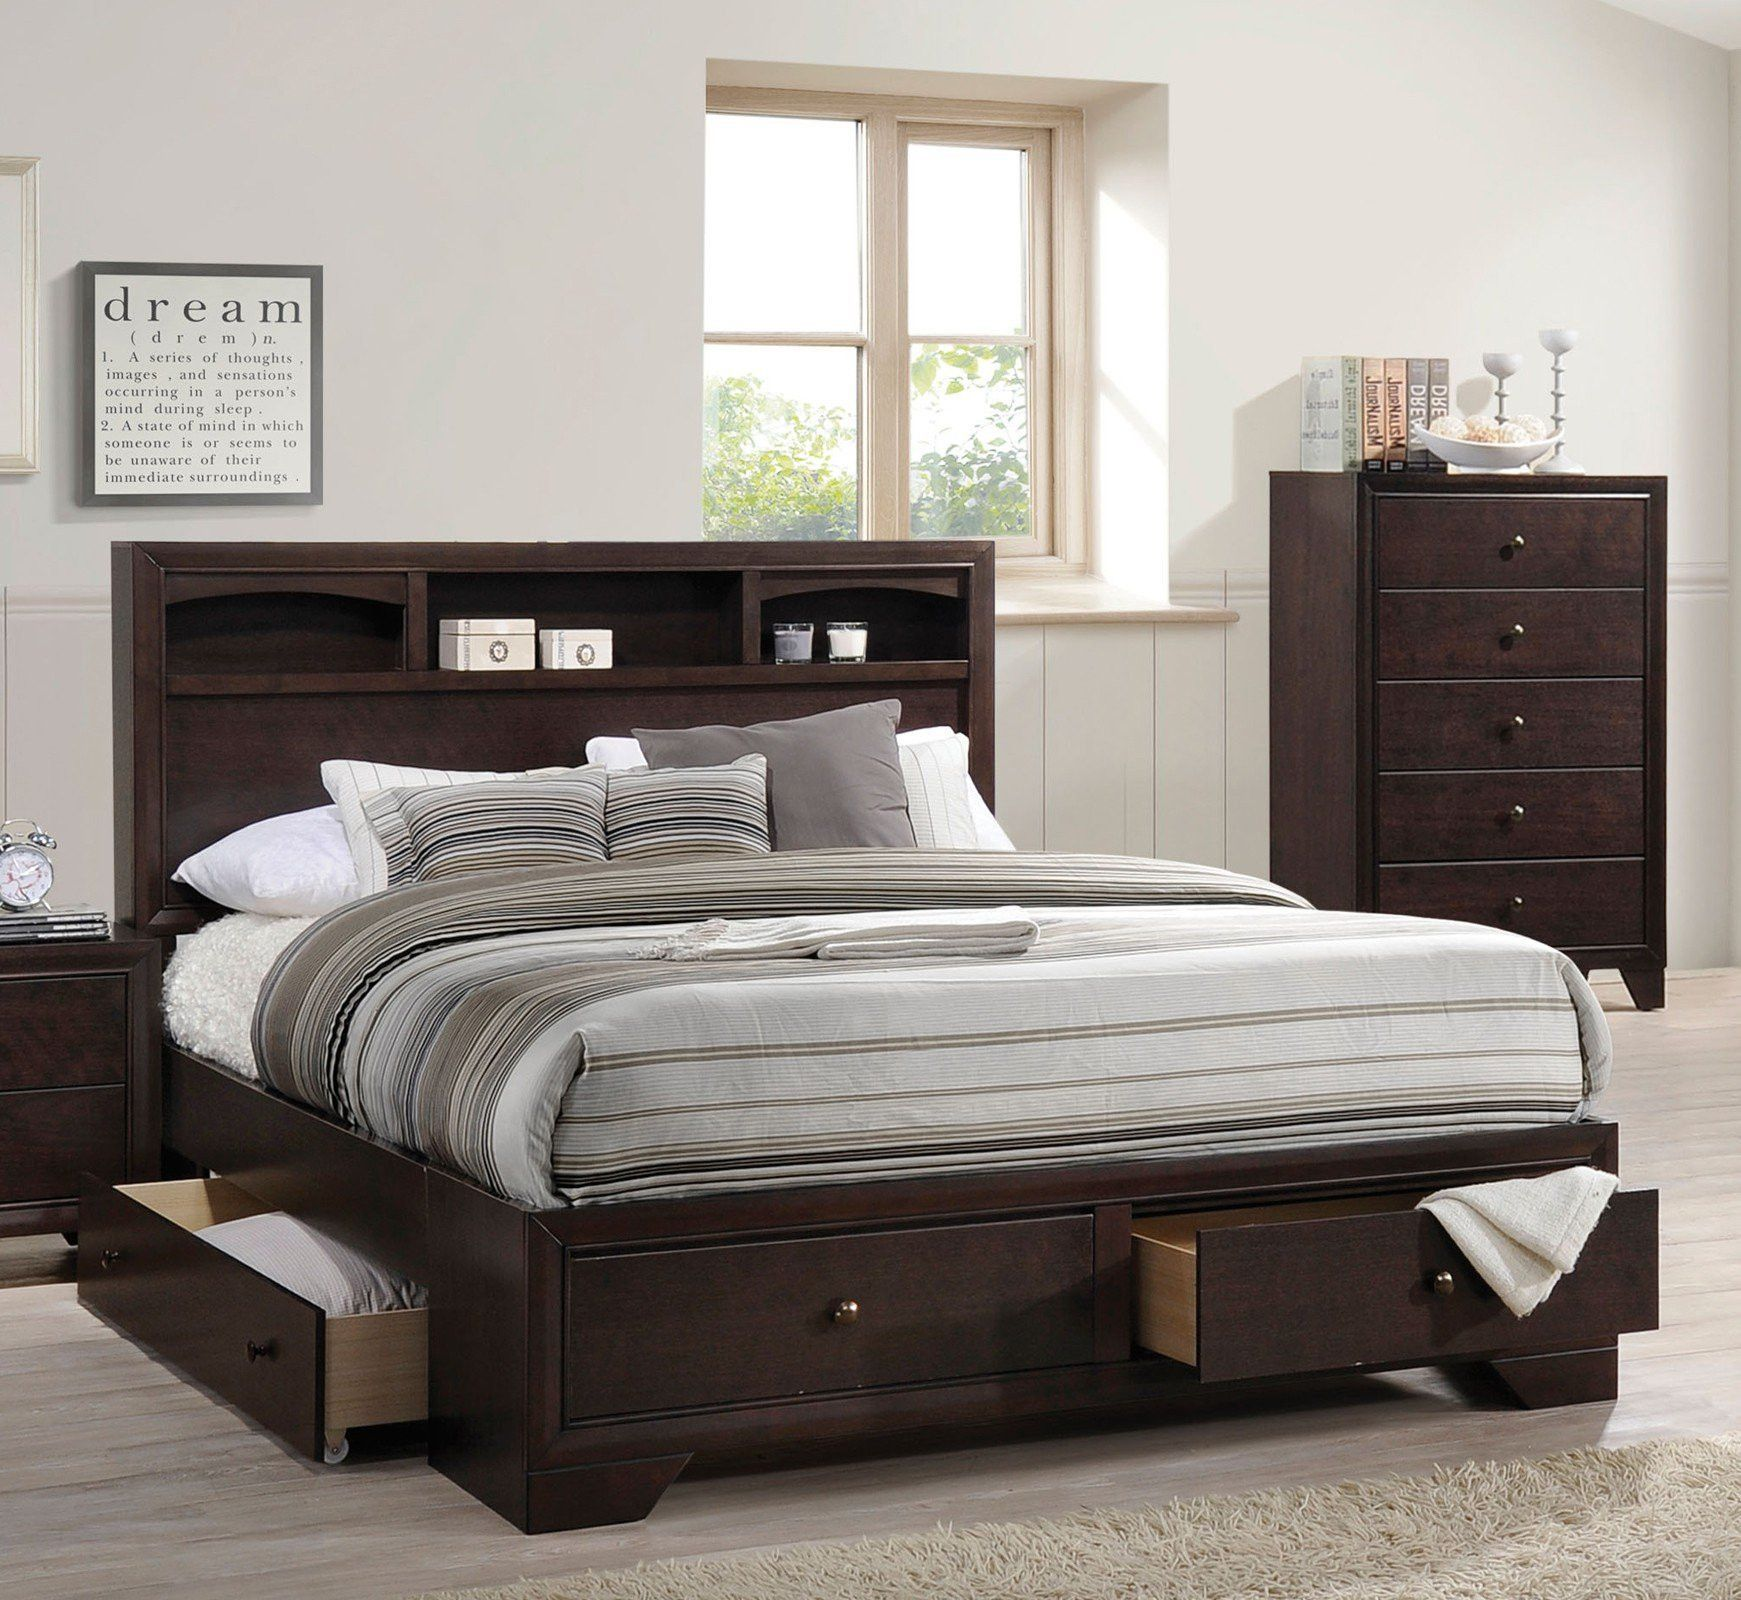 ACME Madison II Eastern King Bed w/Storage Espresso - 19557EK ...